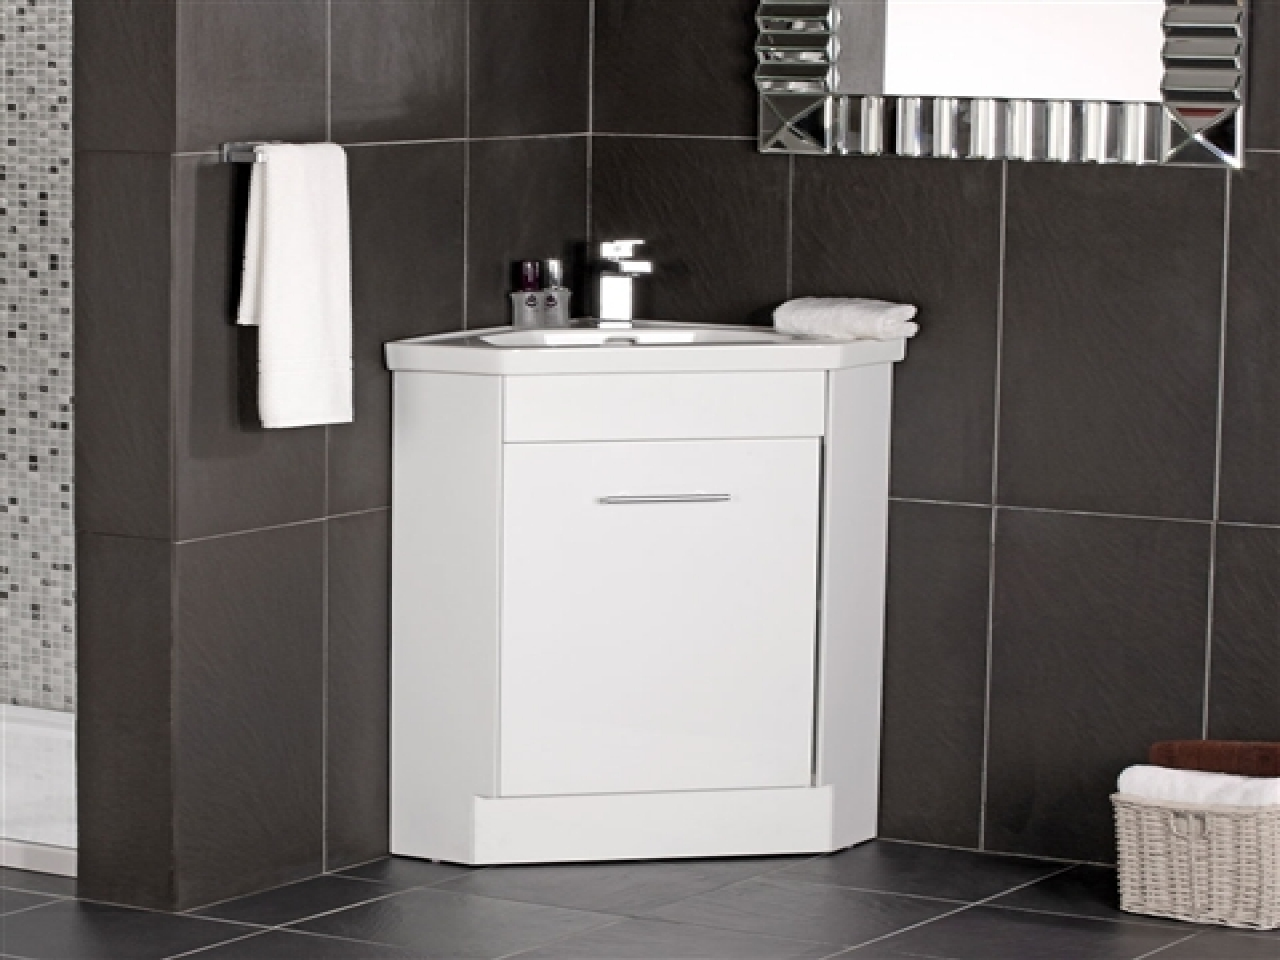 bathroom:Corner Vanity Units For Small Bathrooms Bathroom Vanity Basins Corner Vanities For Small Bathrooms Units